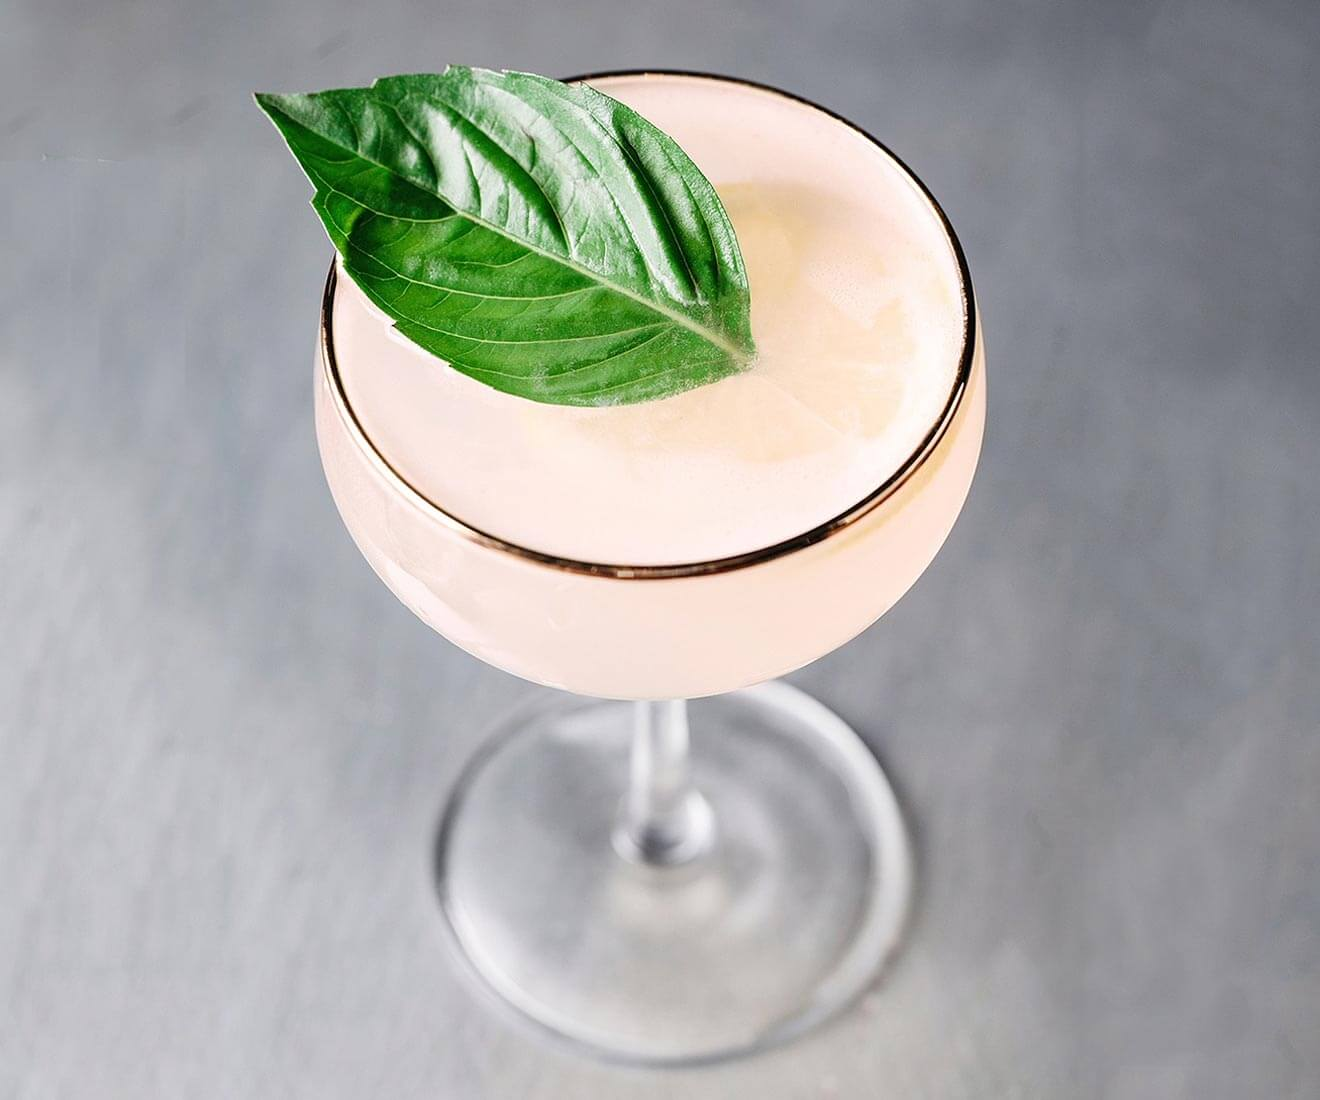 Basil & Grapefruit cocktail